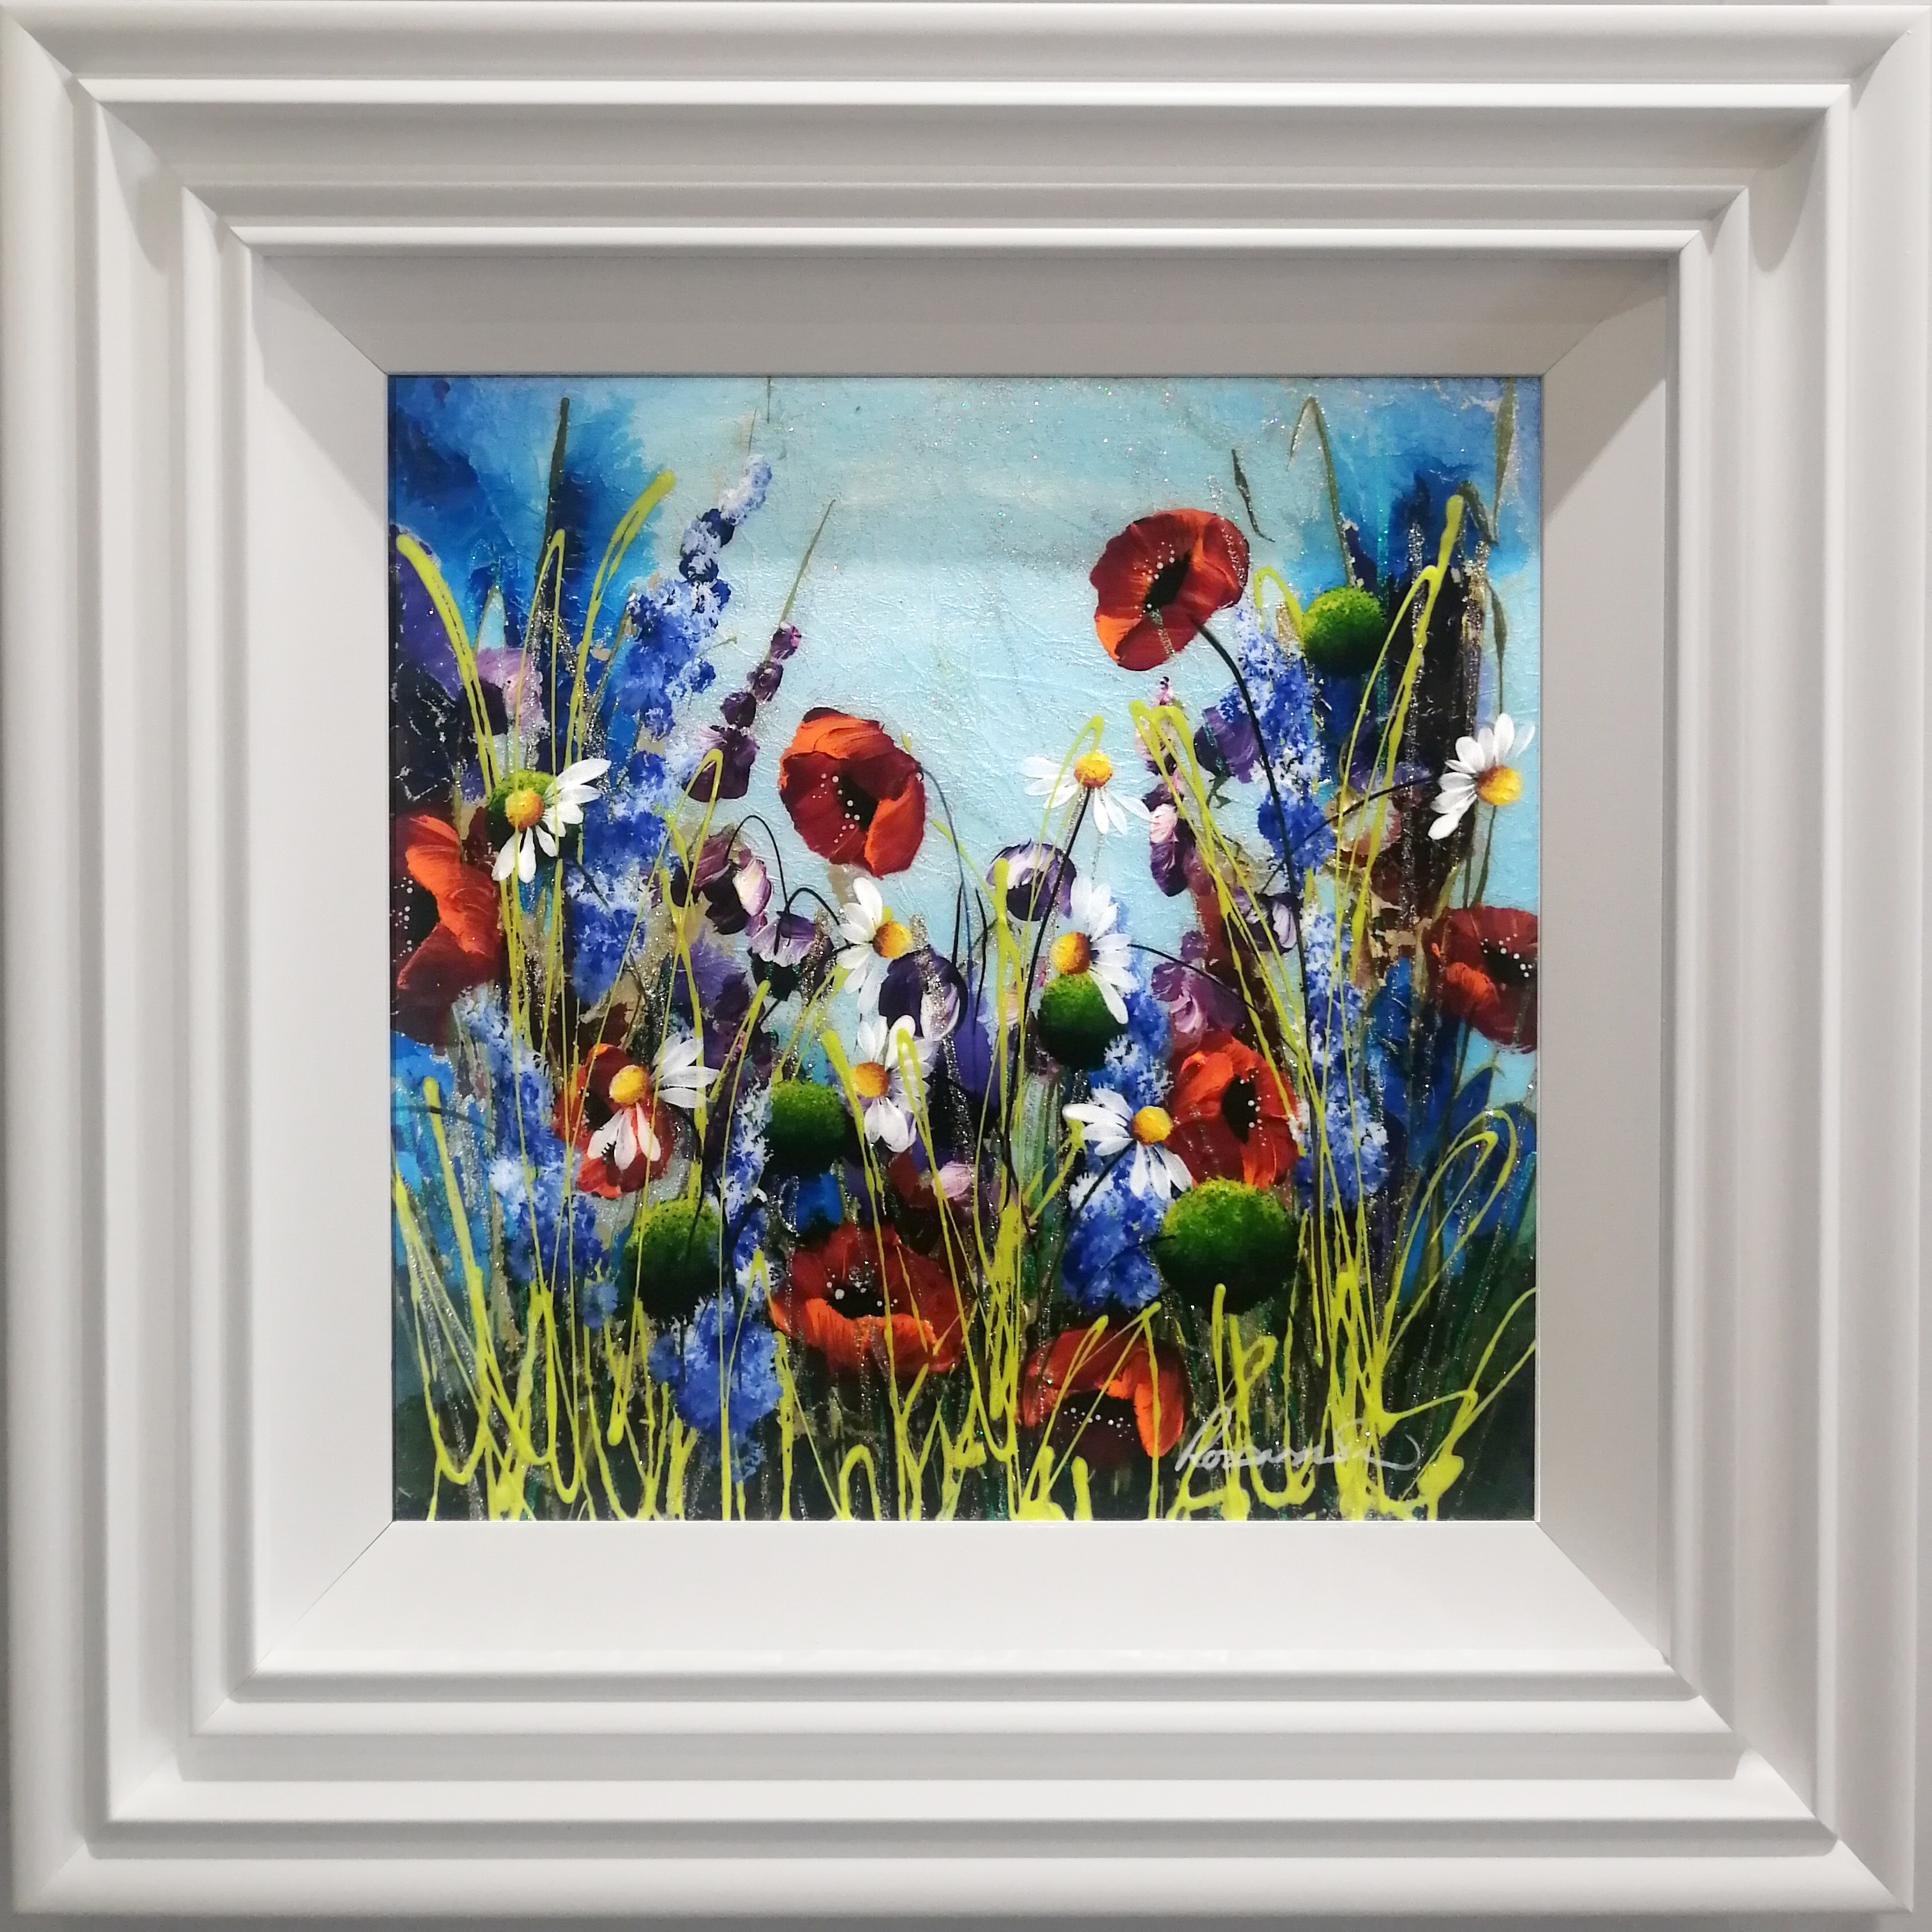 Spring Floral (16x16) by Rozanne Bell